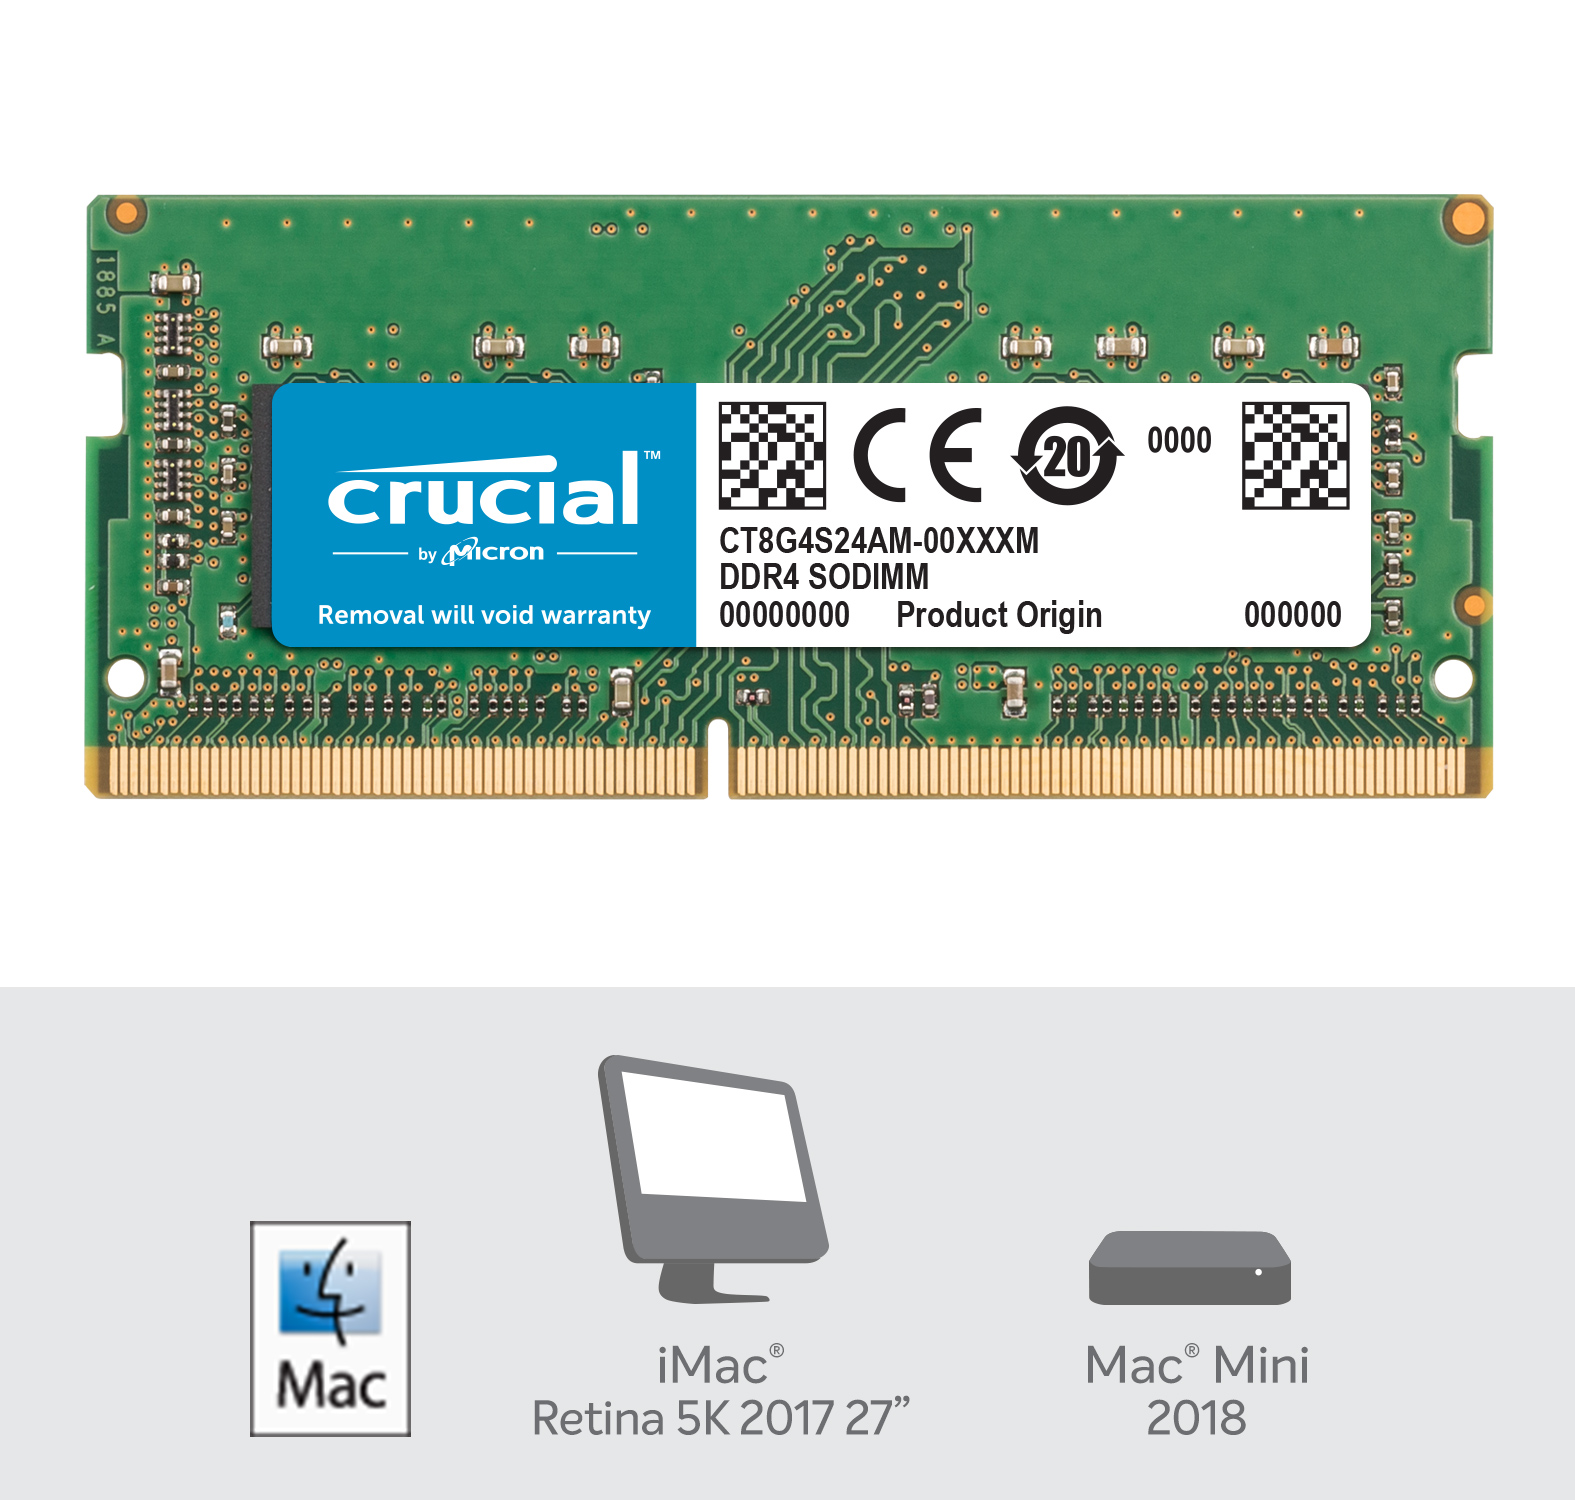 Crucial 8GB DDR4-2400 SODIMM Memory for Mac- view 2